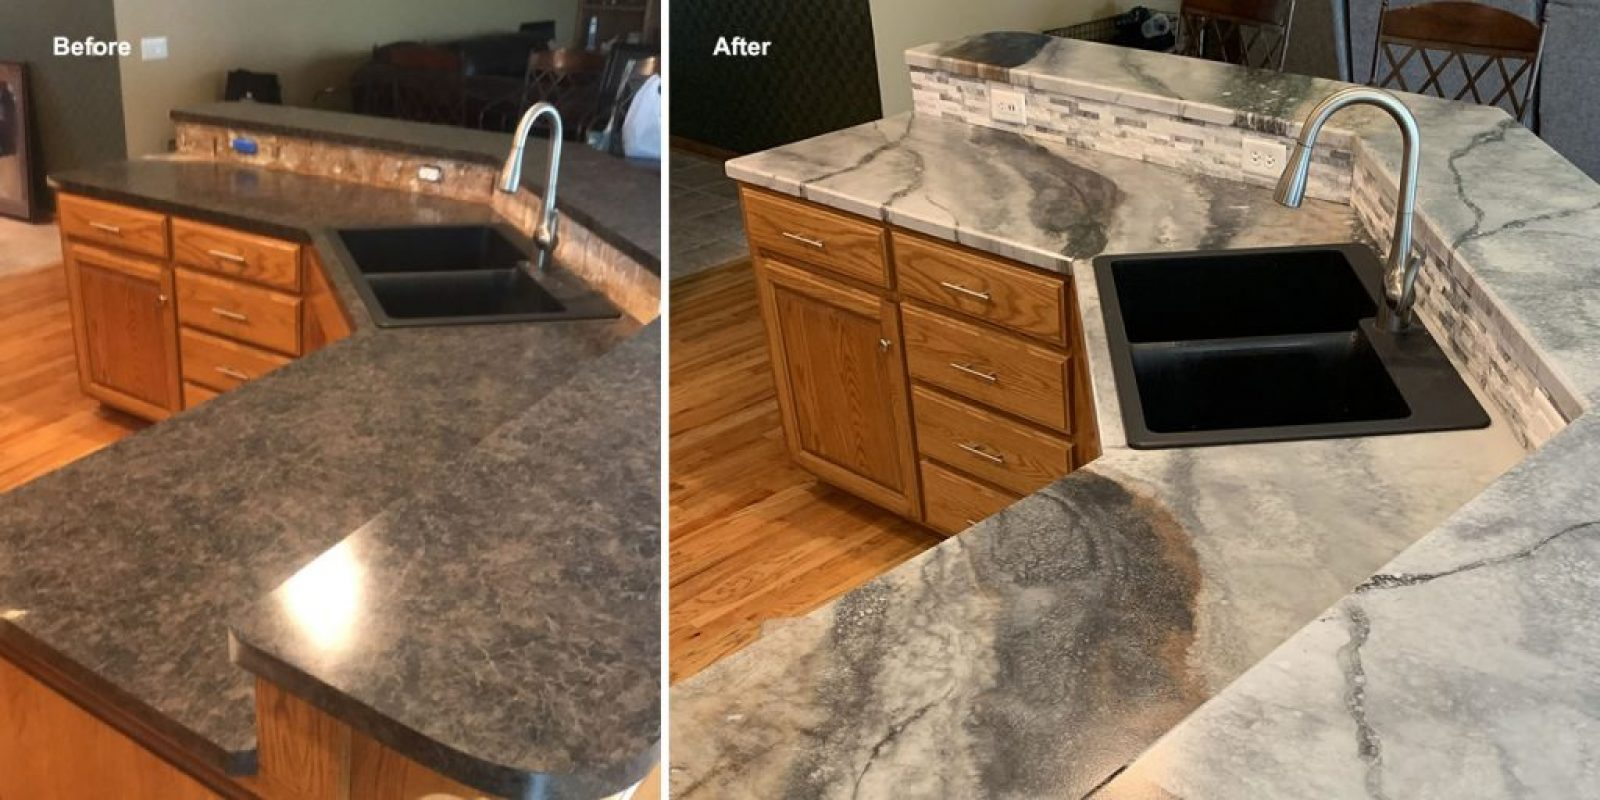 Countertop Resurfacing-Palm Beach Bath Tub Reglazing & Tub Resurfacing Contractors-We do Bathtub Reglazing, Bathtub Refinishing, Tub Resurfacing, Bathtub Restoration, Countertop Resurfacing, Ceramic Tile Refinishing, Acid Free Reglazing, Commercial Bathroom Reglazing, and more